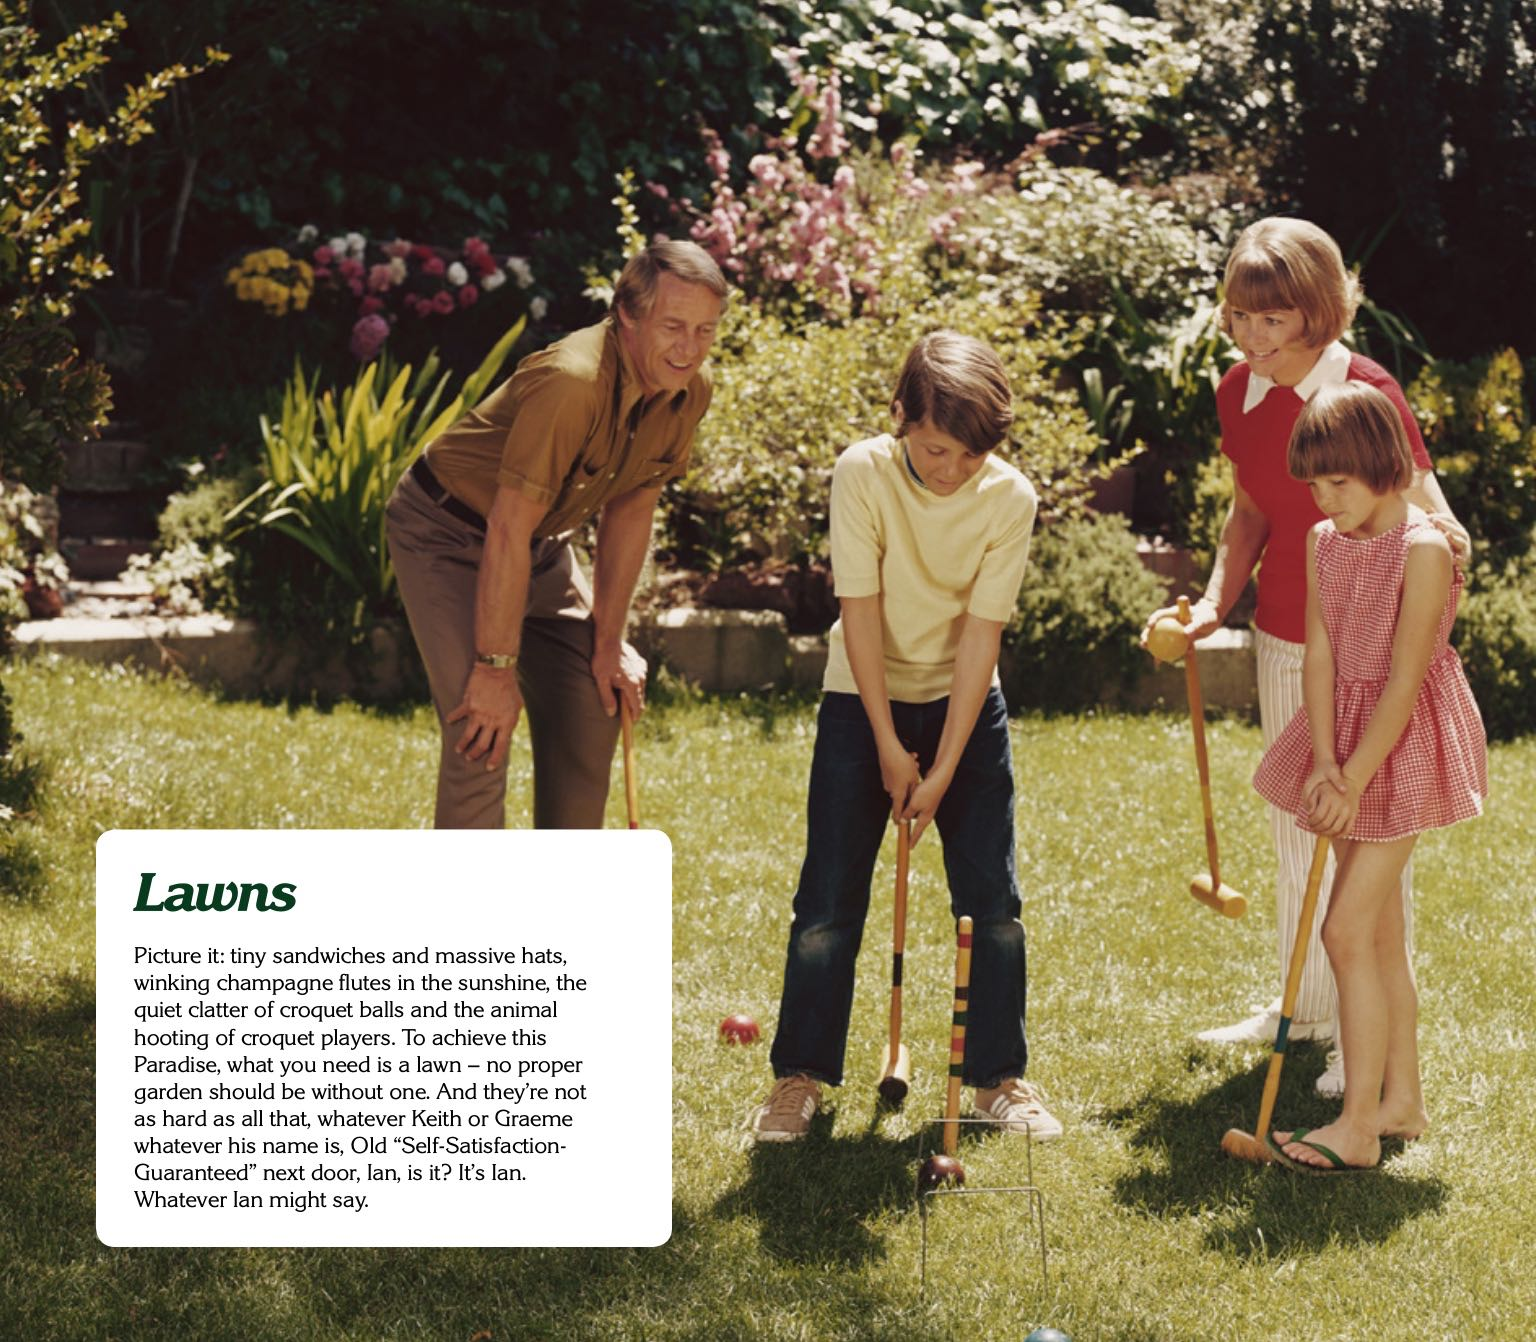 Photo credit: The Extremely Busy and Important Person's Guide to Gardening